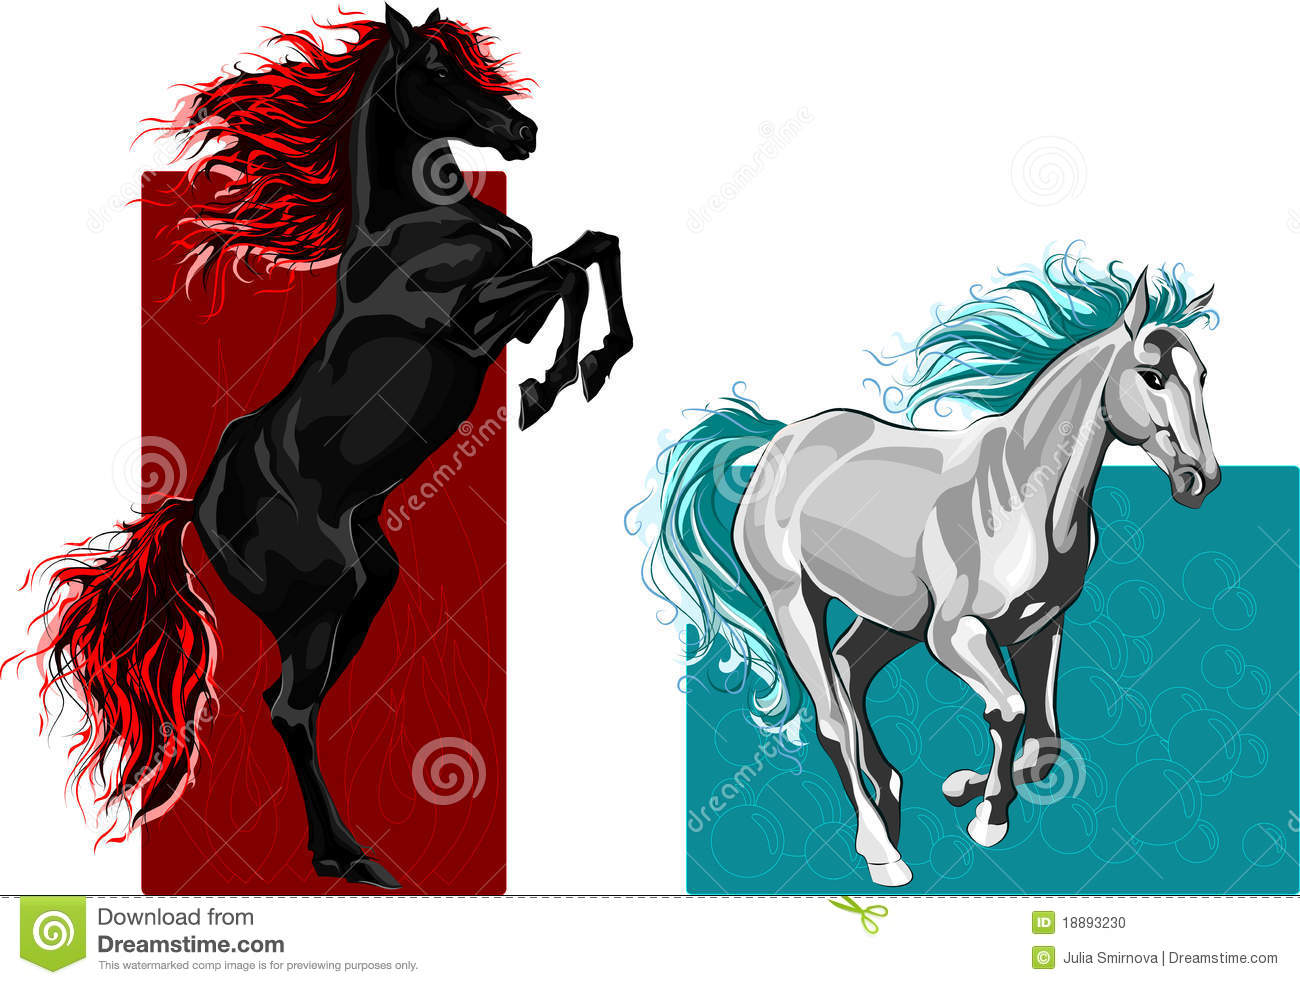 Vector illustration of two horses, fire and water elements.